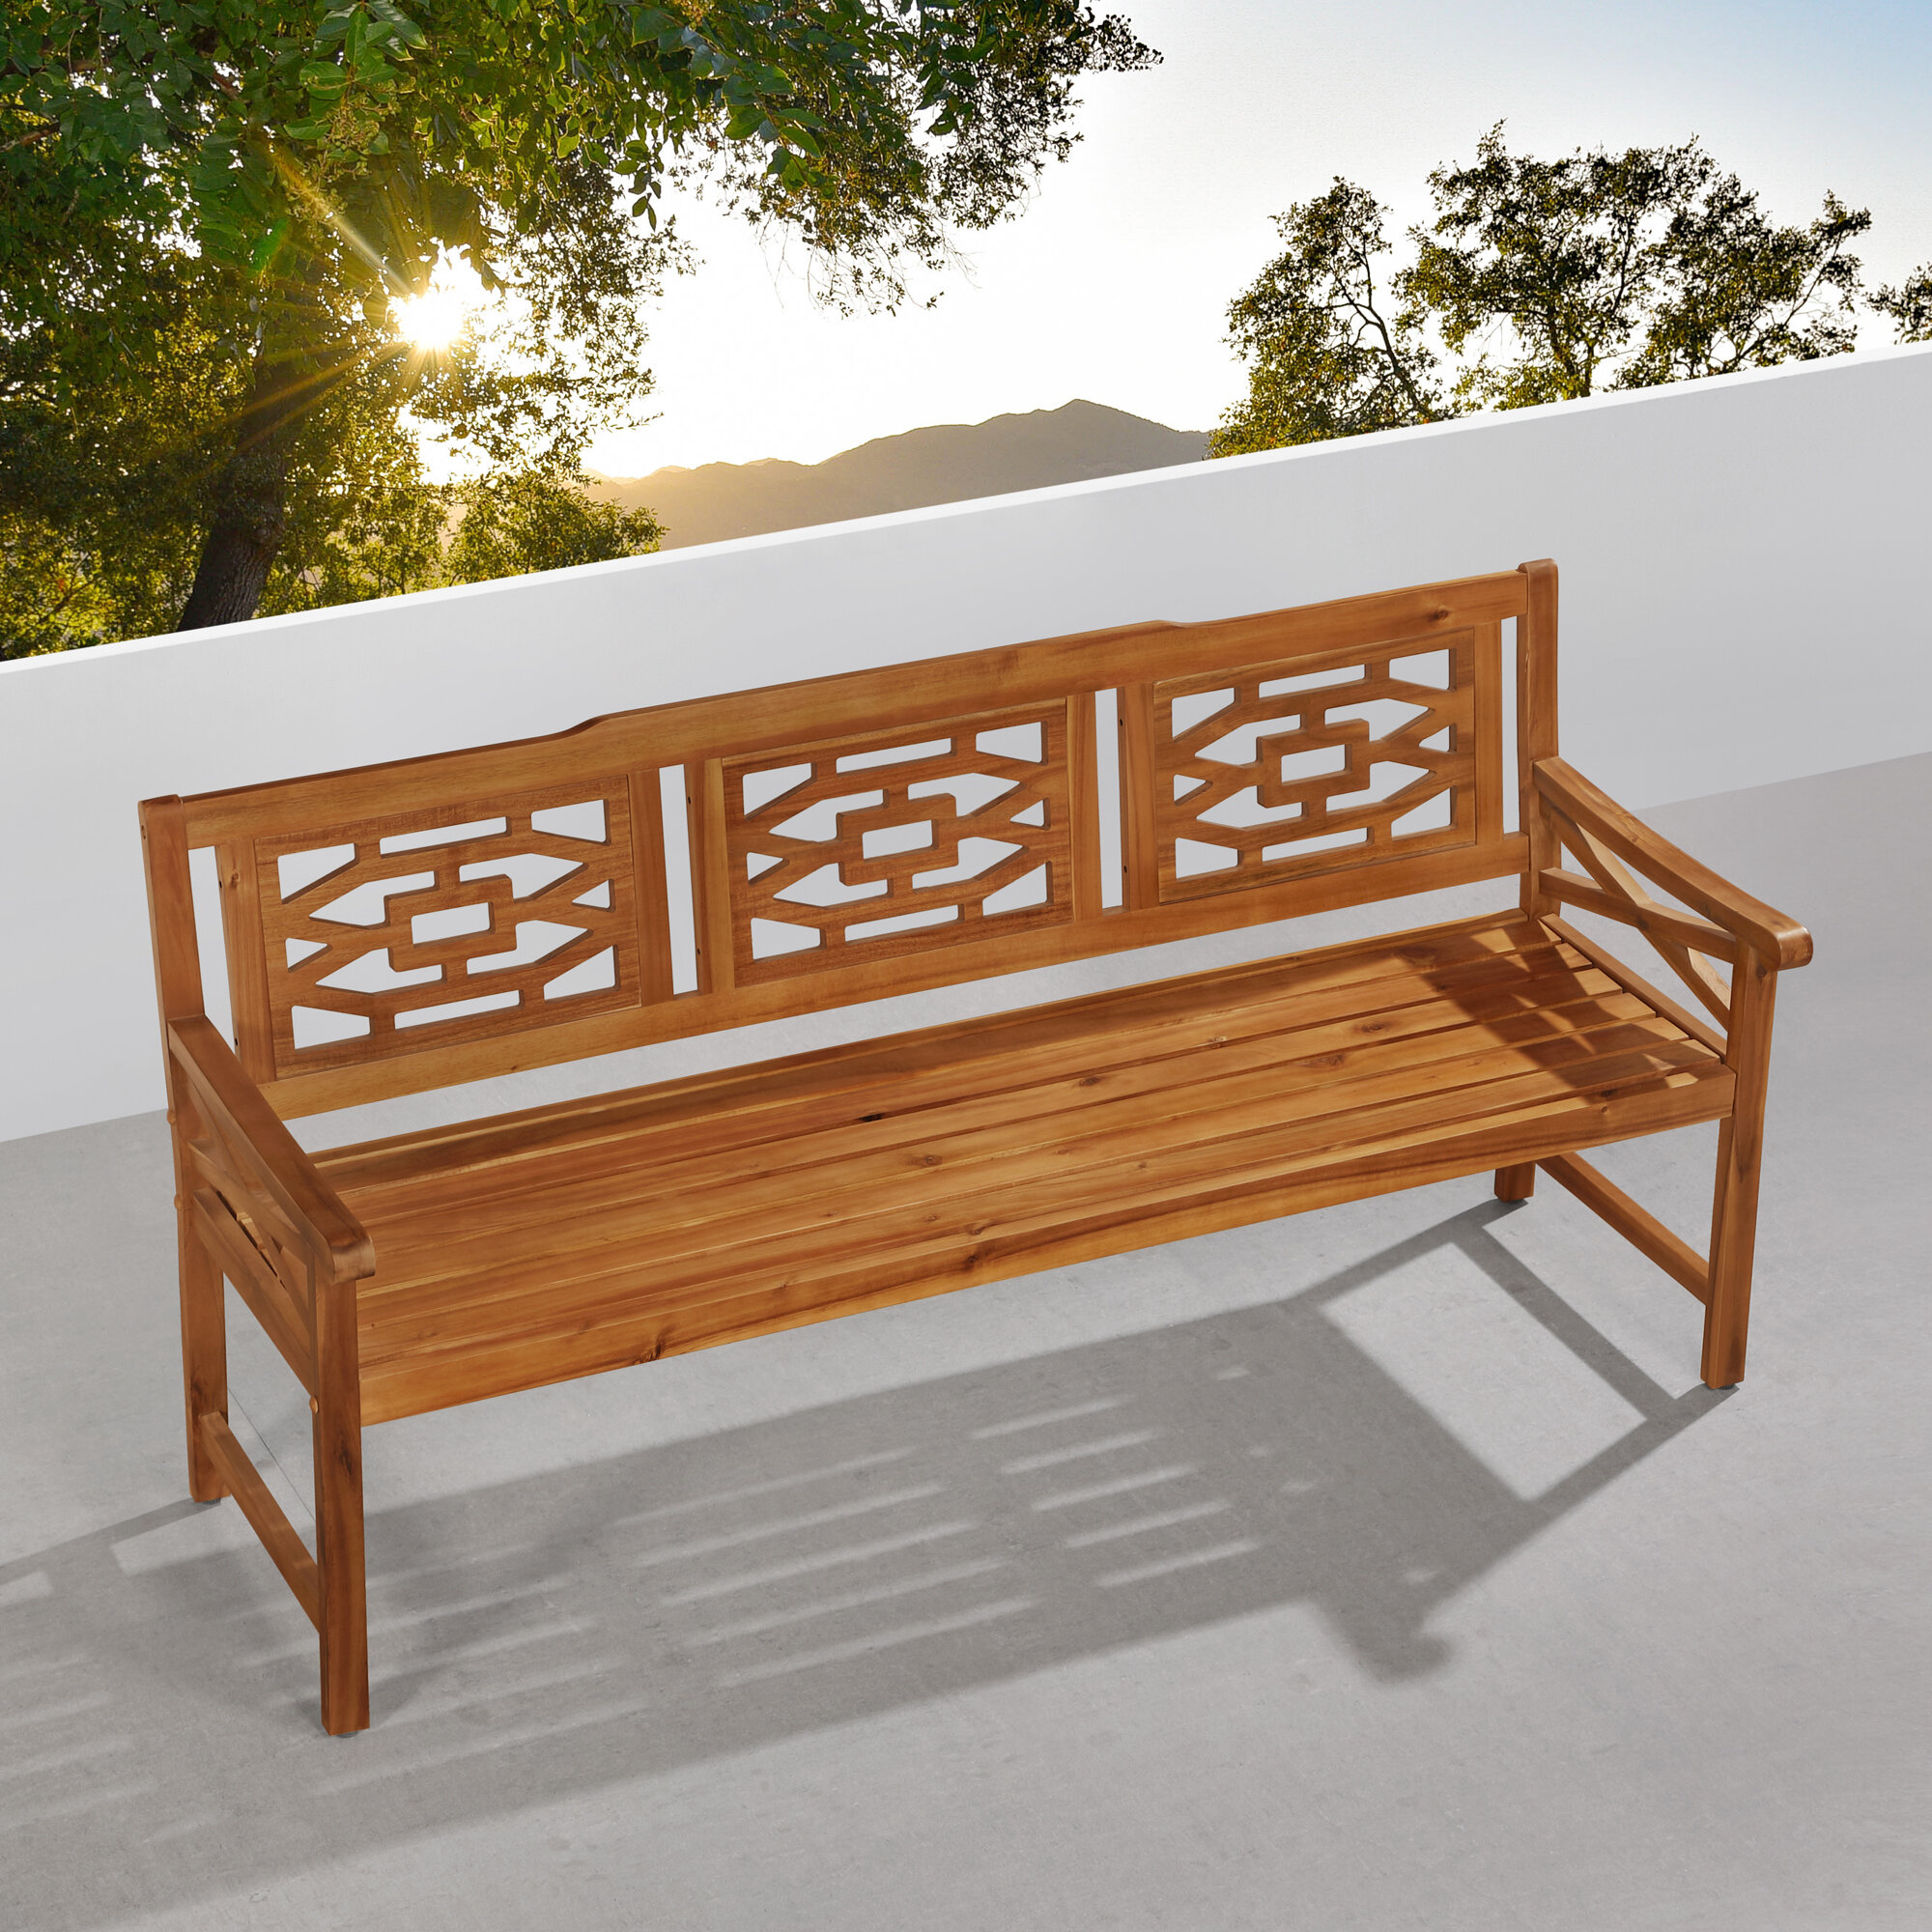 Malay Wooden Garden Bench Pertaining To Harpersfield Wooden Garden Benches (View 18 of 25)